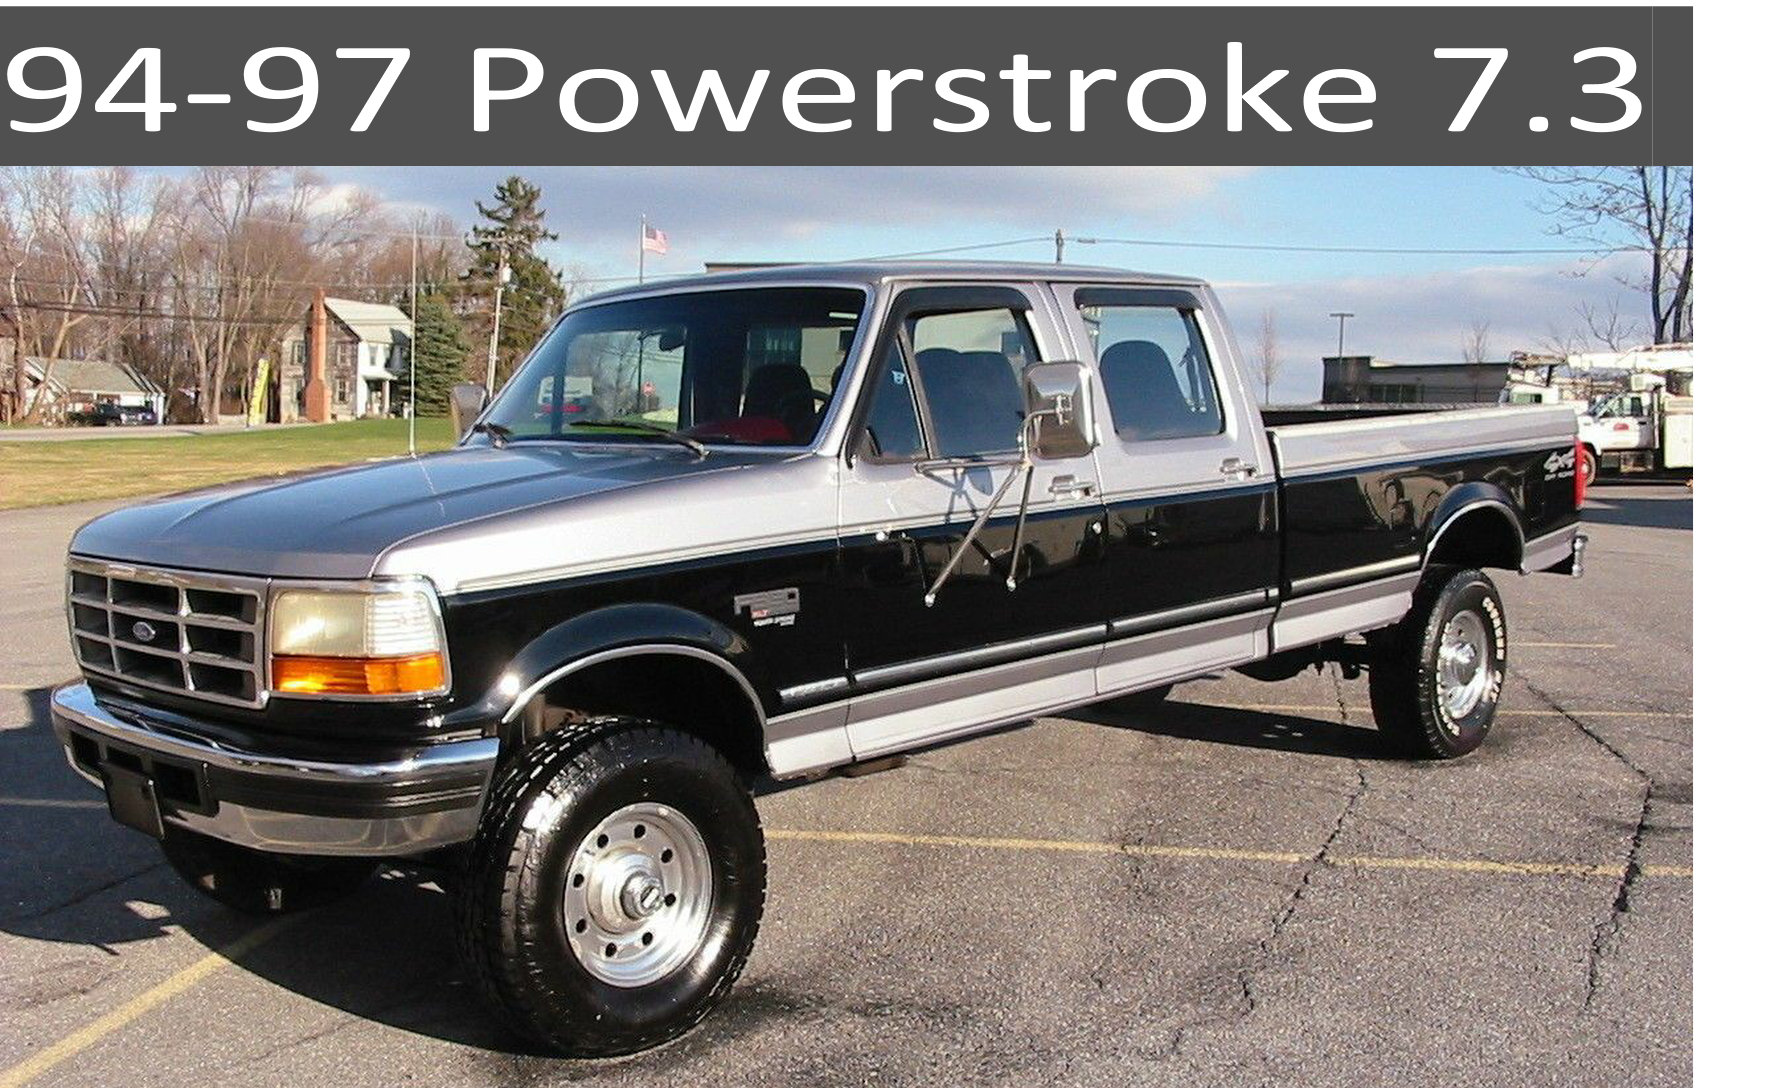 94-97 Ford 7.3 Powerstroke Diesel Parts